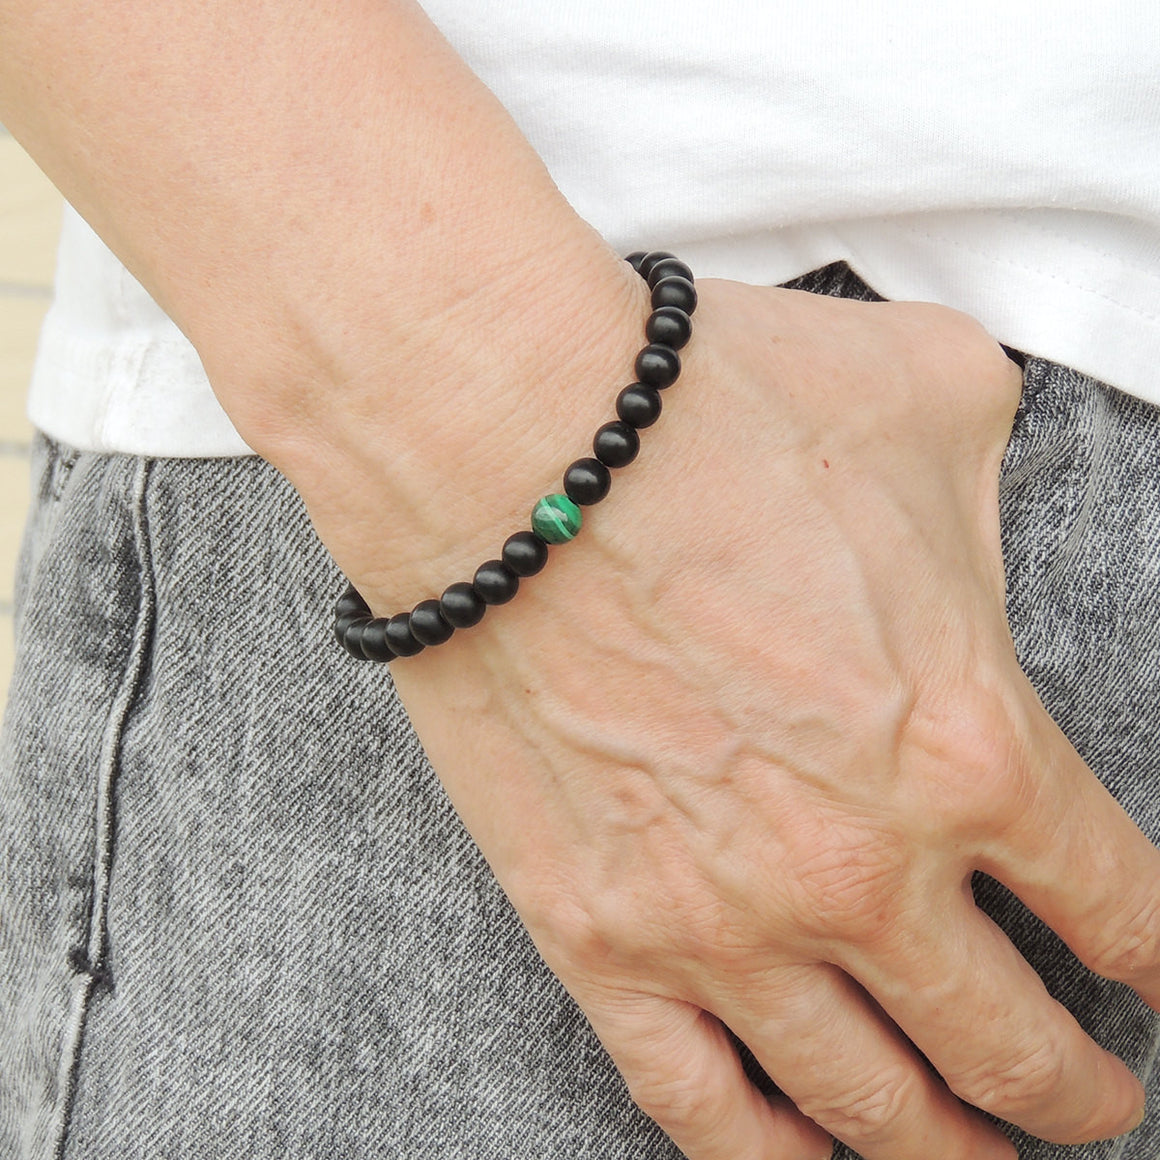 6mm Matte Black Onyx & 7mm Malachite Healing Gemstone Bracelet - Handmade by Gem & Silver BR625